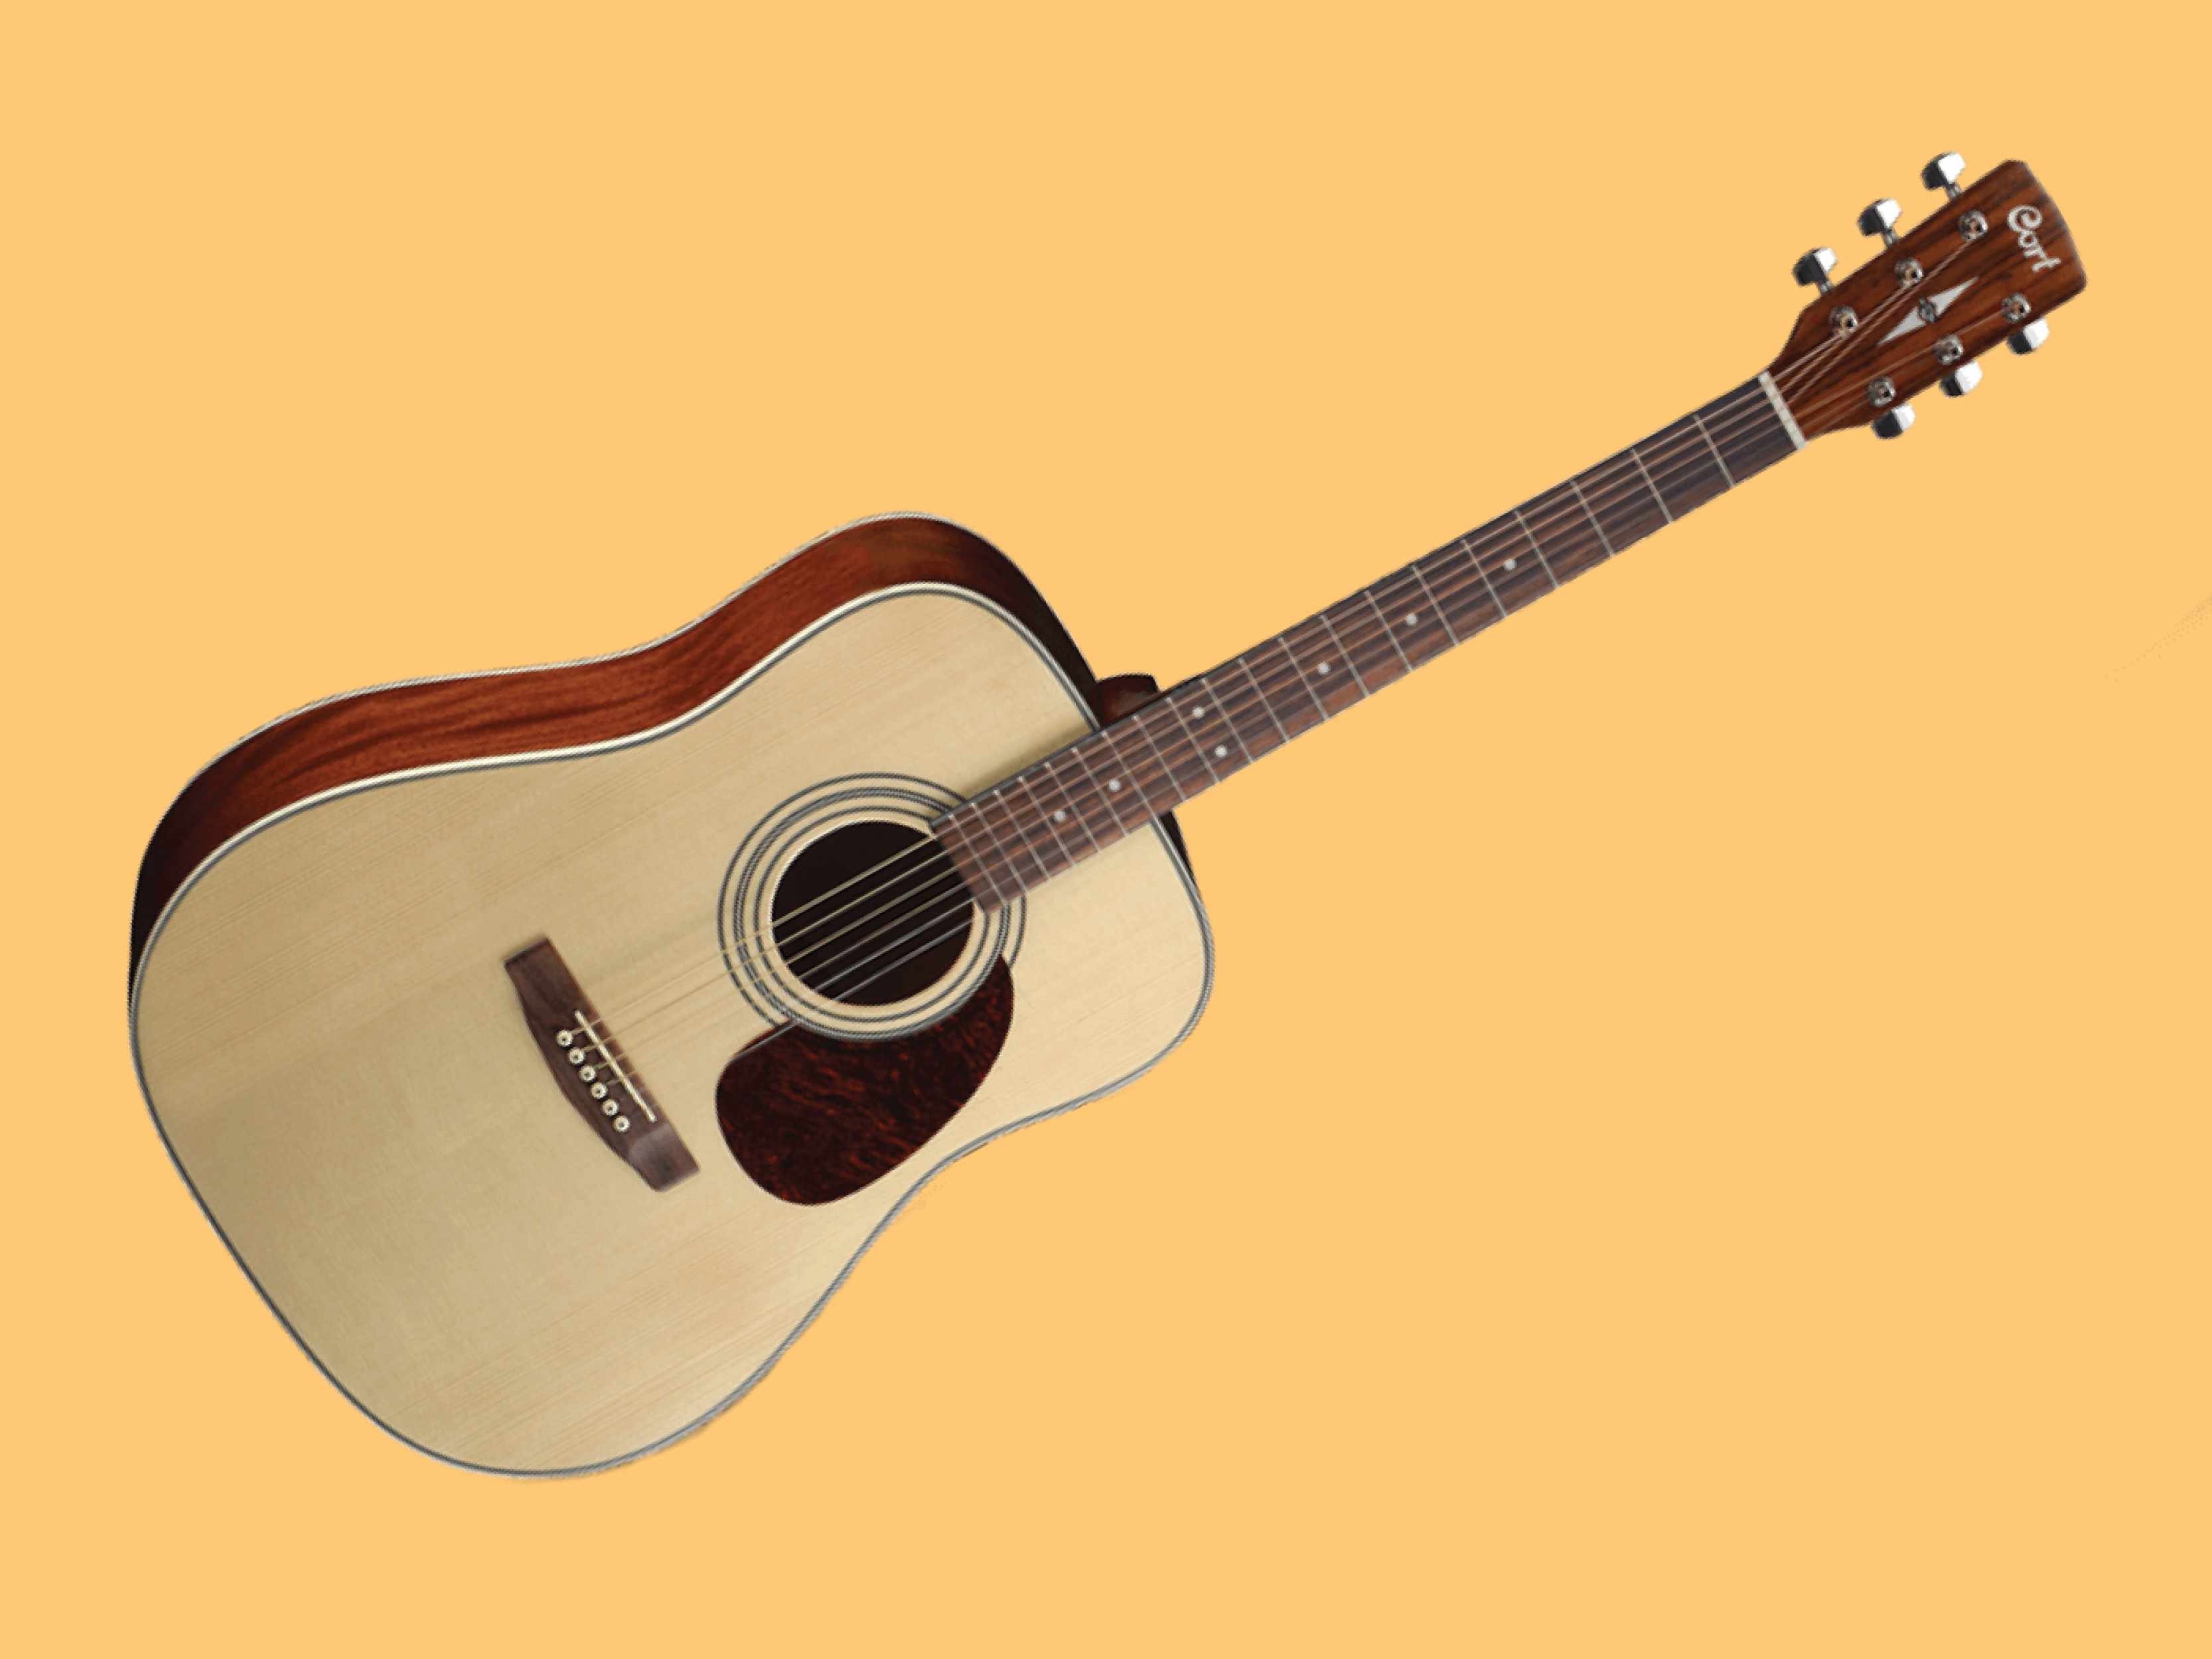 Cort Earth 70 acoustic